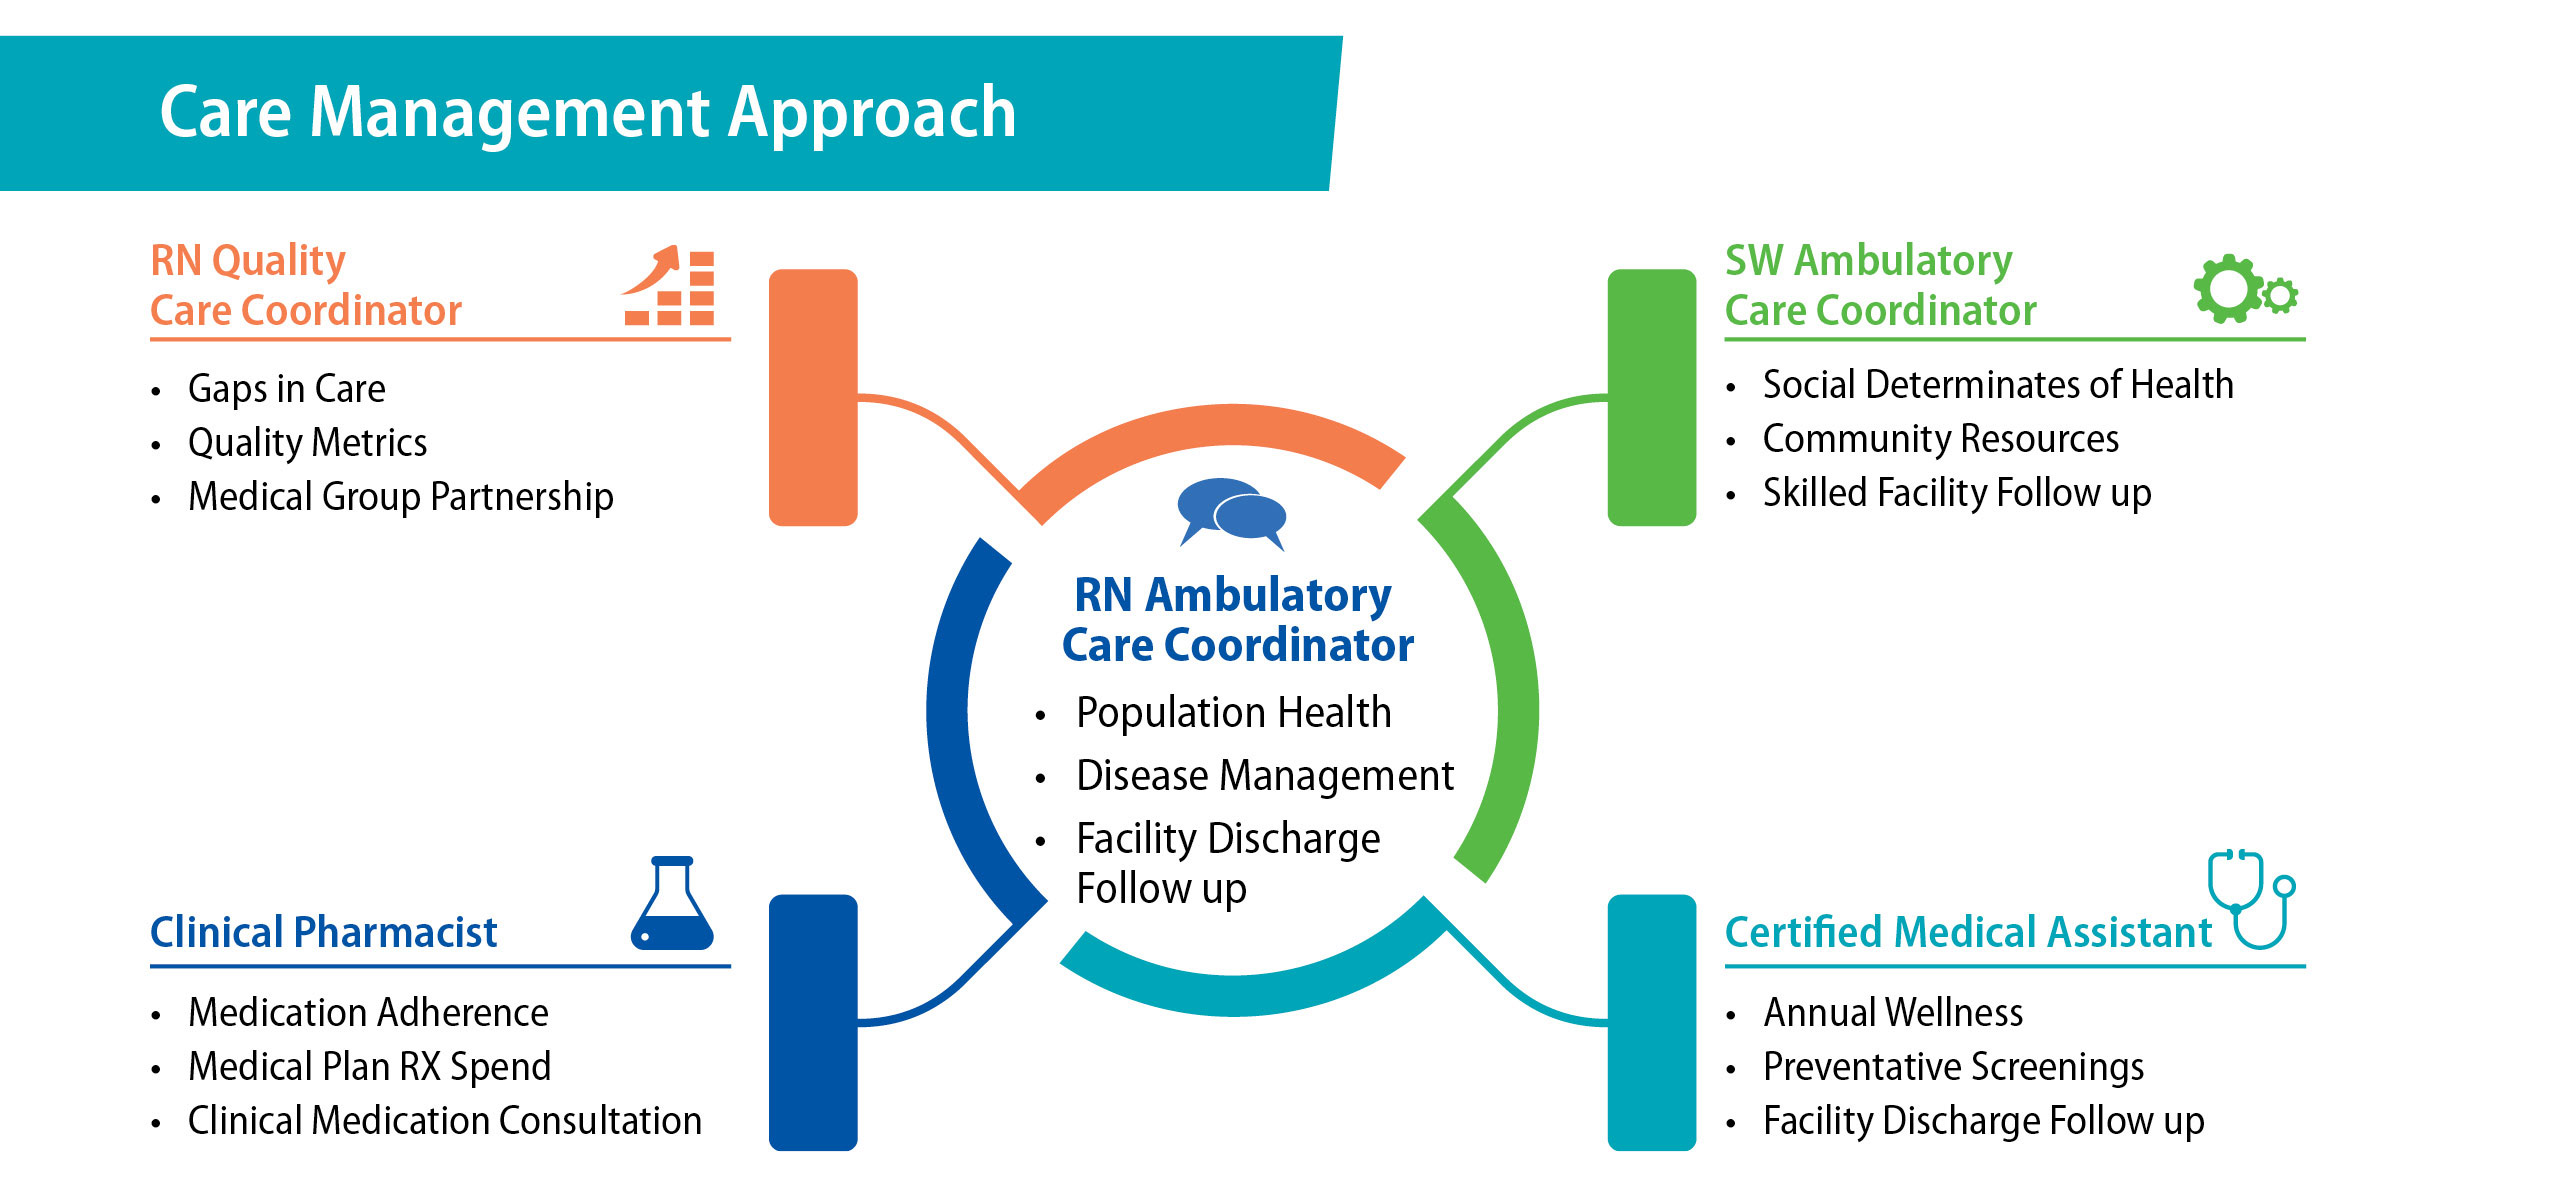 Care Management Approach includes RN Quality Care Coordinator, Clinical Pharmacist, SW Ambulatory Care Coordinator and Certified Medical Assistant